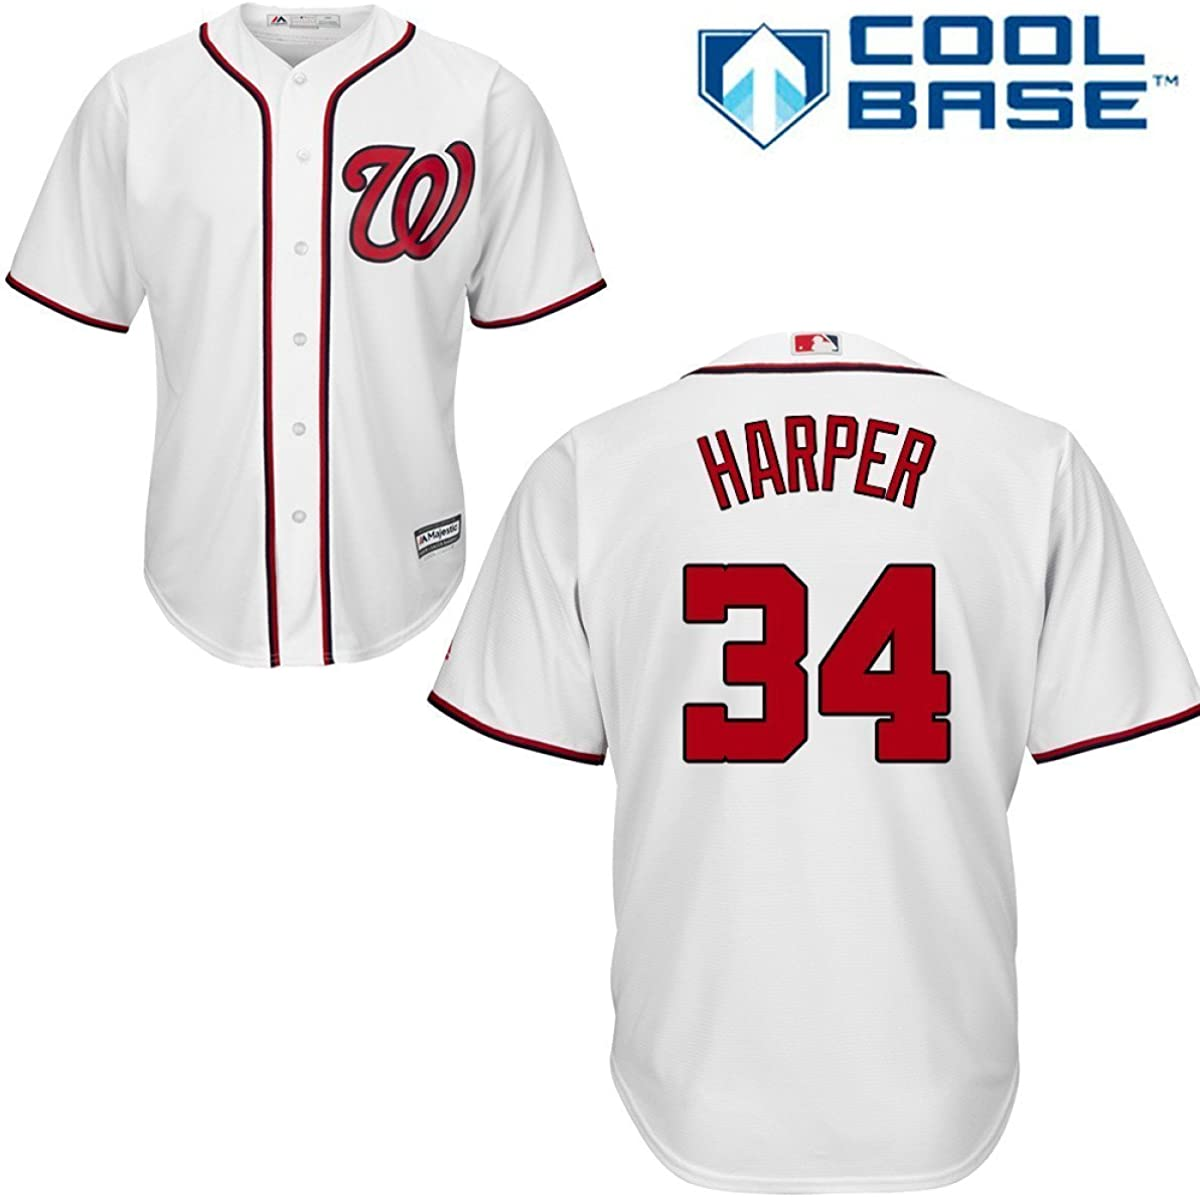 Bryce Harper Washington Nationals White MLB Max Regular discount 72% OFF Cool Base Home Youth